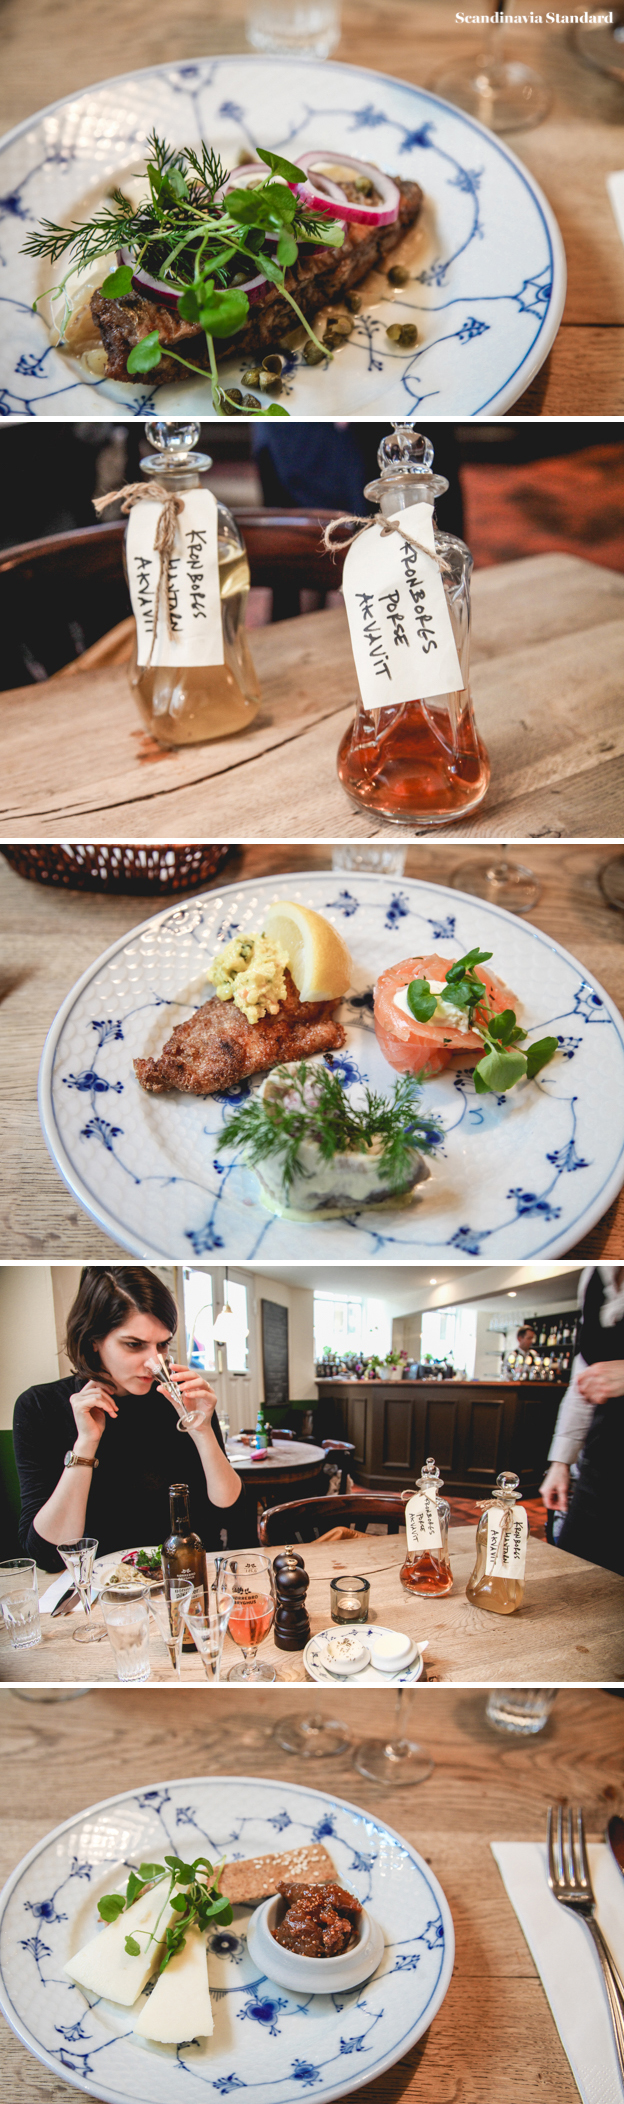 Restaurant Kronborg Collage - Danish Easter Lunch - Påskefrokost | Scandinavia Standard